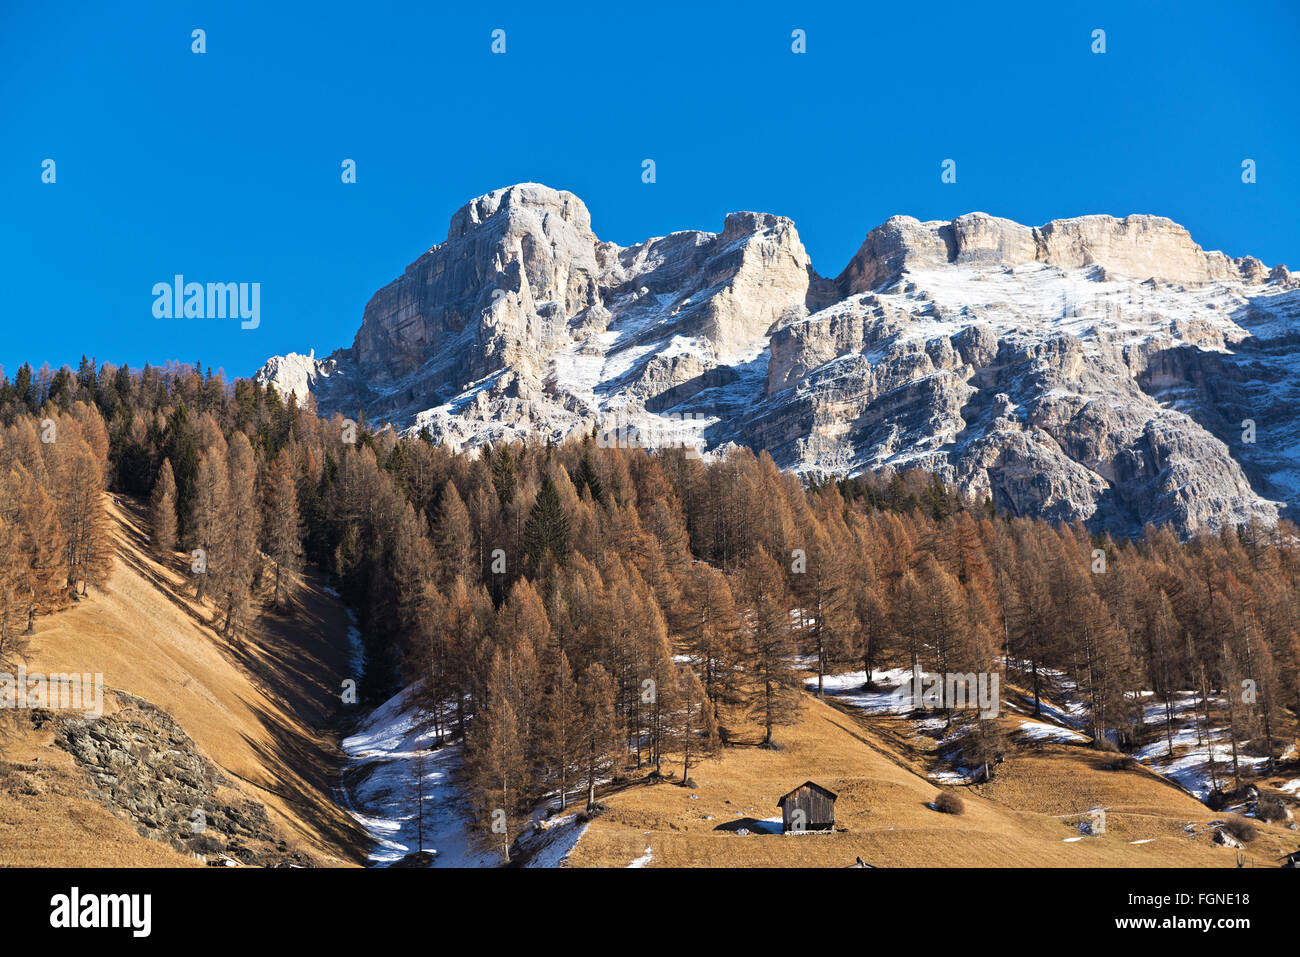 Mountains and hill landscape in autumn season with blue sky in background, Alta Badia - Dolomiti, Trentino-Alto - Stock Image